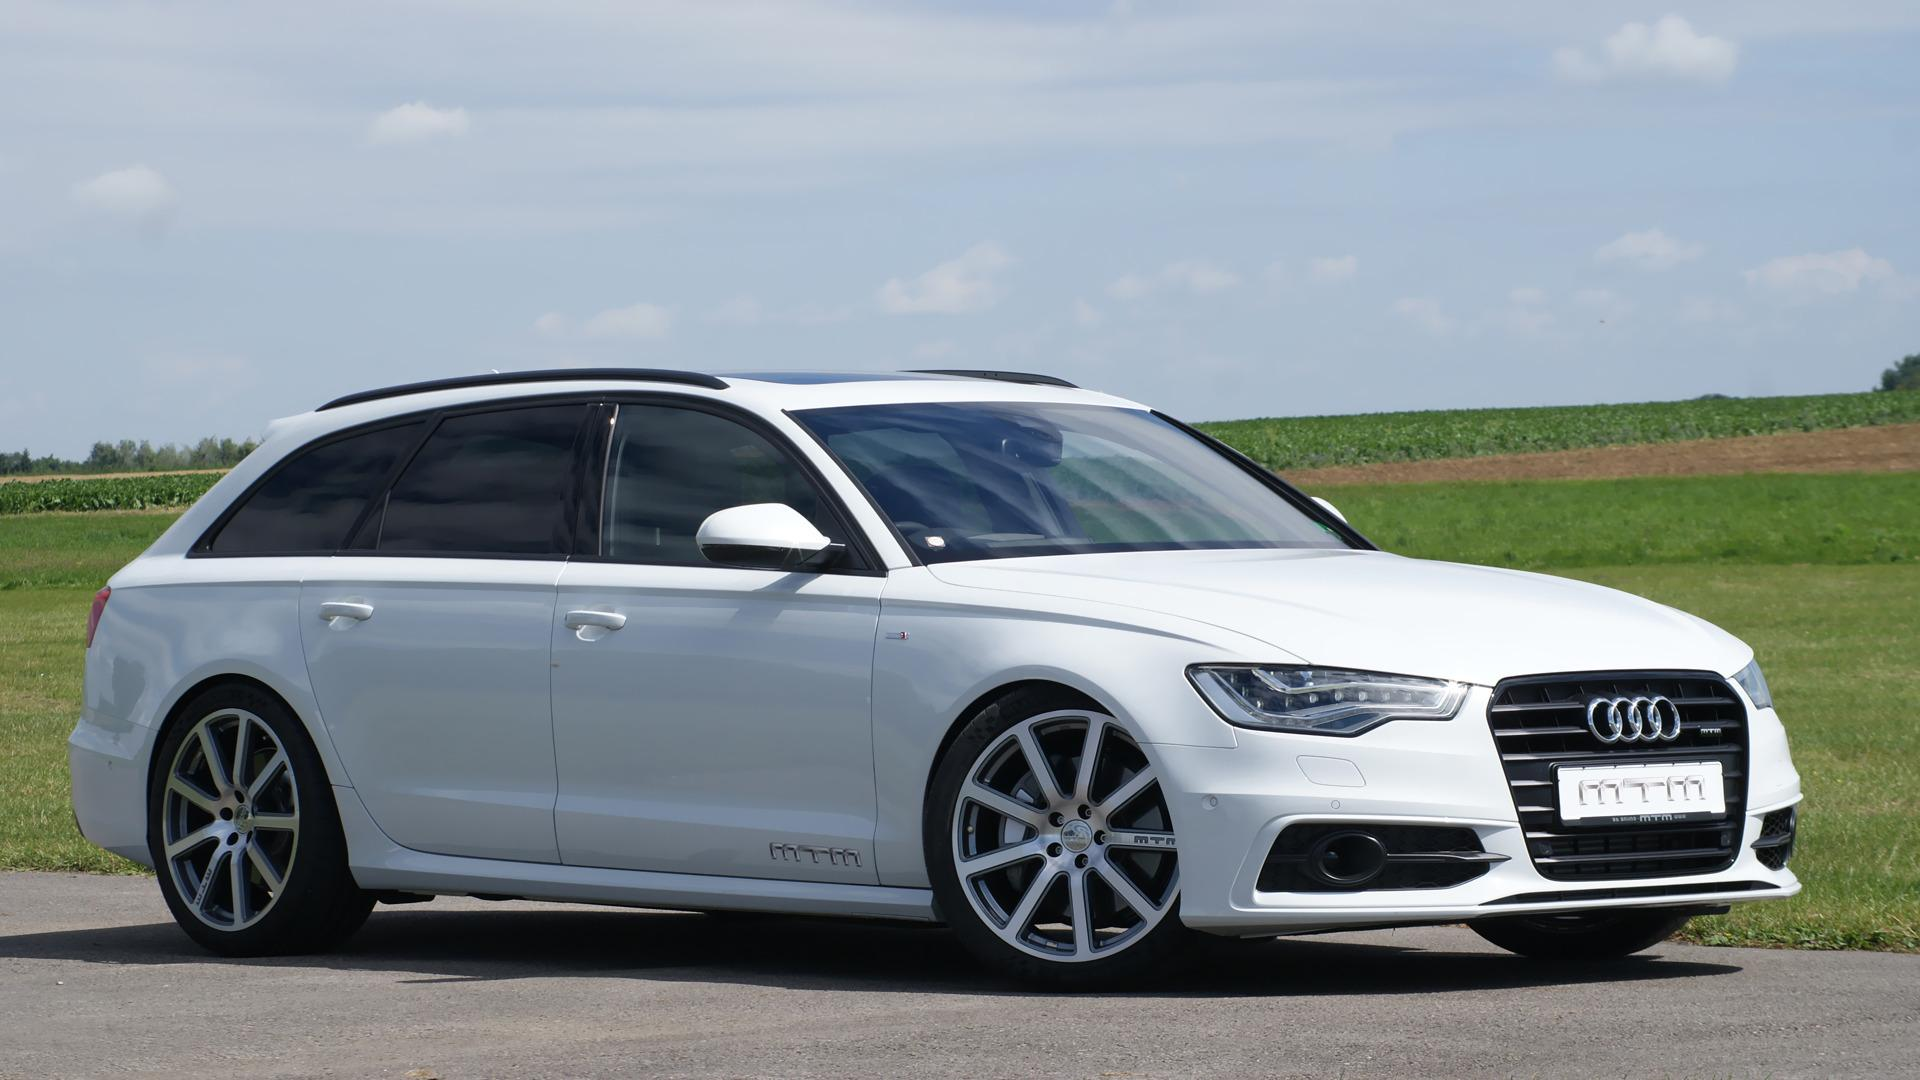 Audi A6 Wallpaper - WallpaperSafari